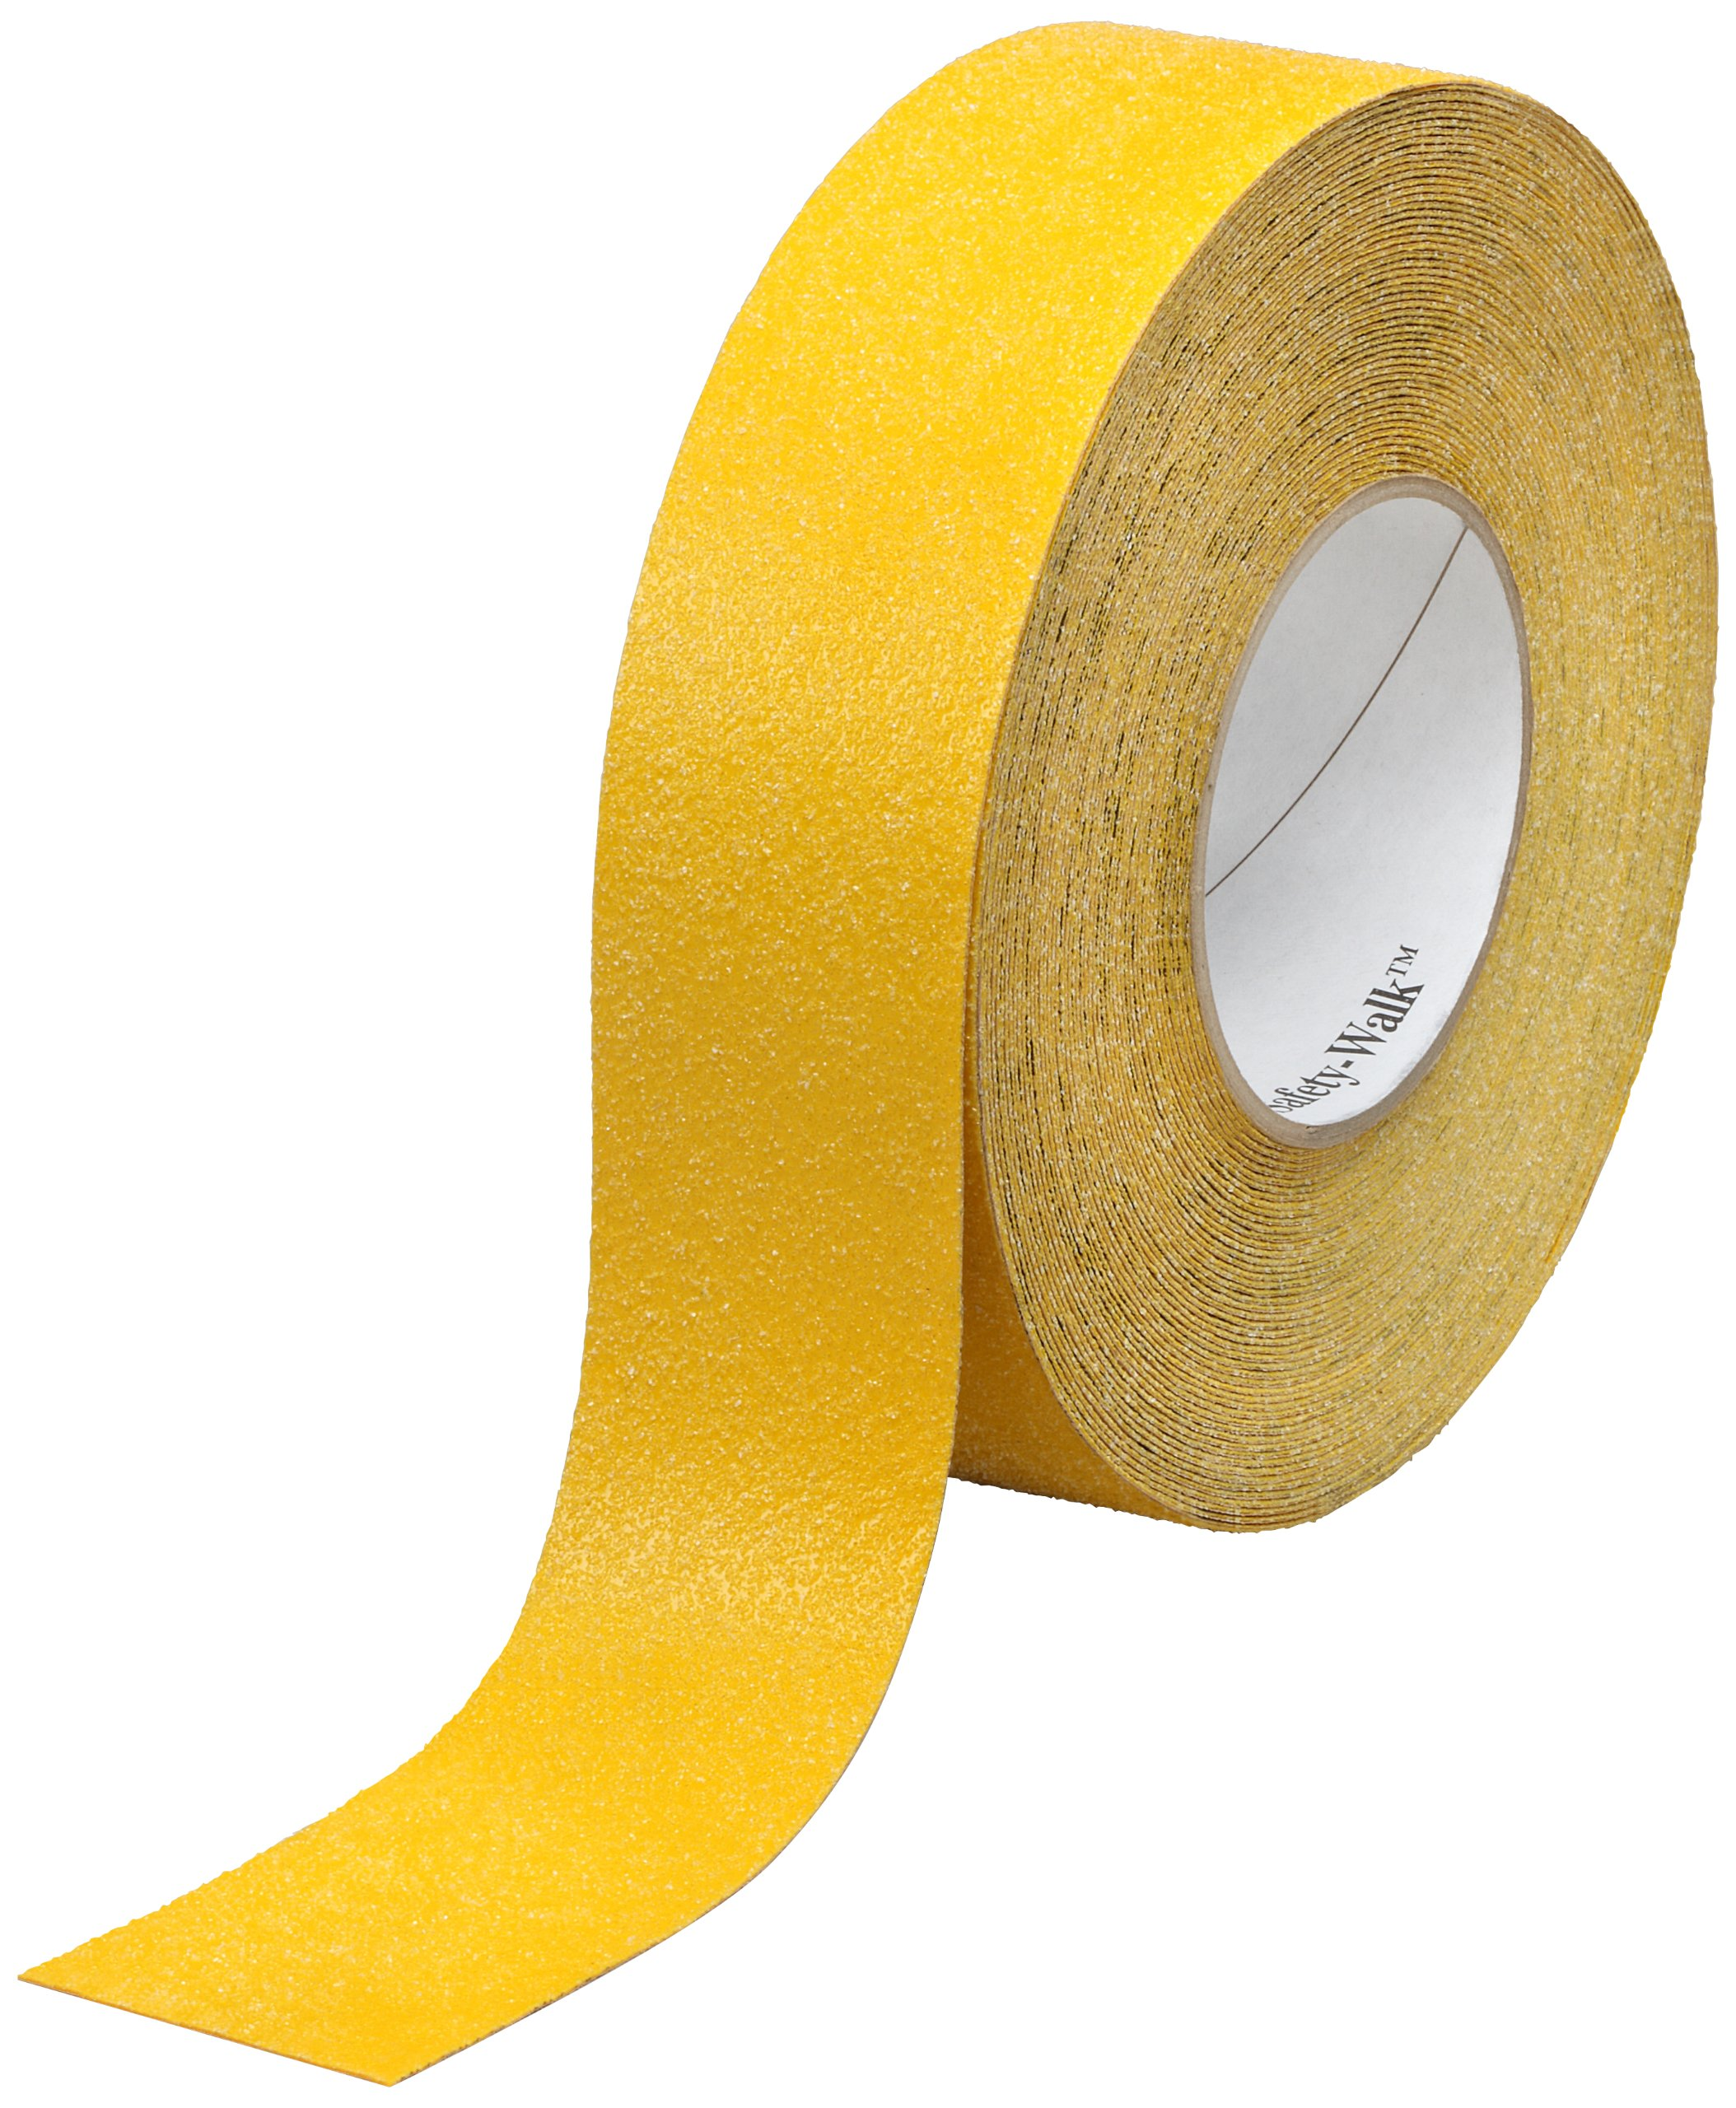 3M Safety-Walk Slip-Resistant General Purpose Tapes and Treads 630-B, Safety Yellow, 2'' x 60' (Pack of 2 Rolls)